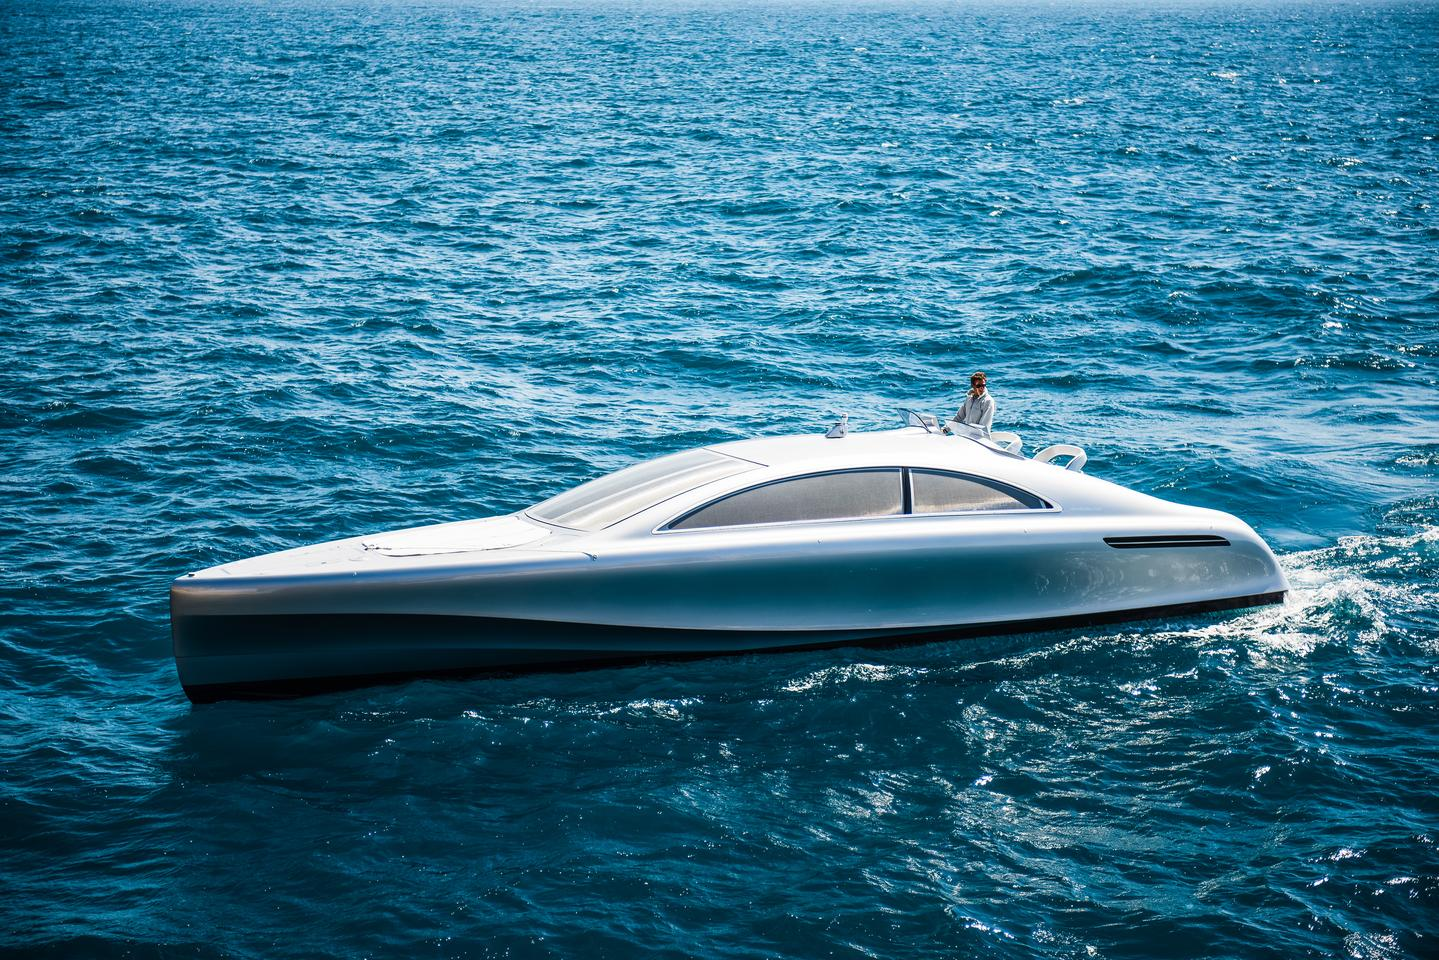 Mercedes-Benz has teamed up with Silver Arrows Marine to create an exclusive yacht